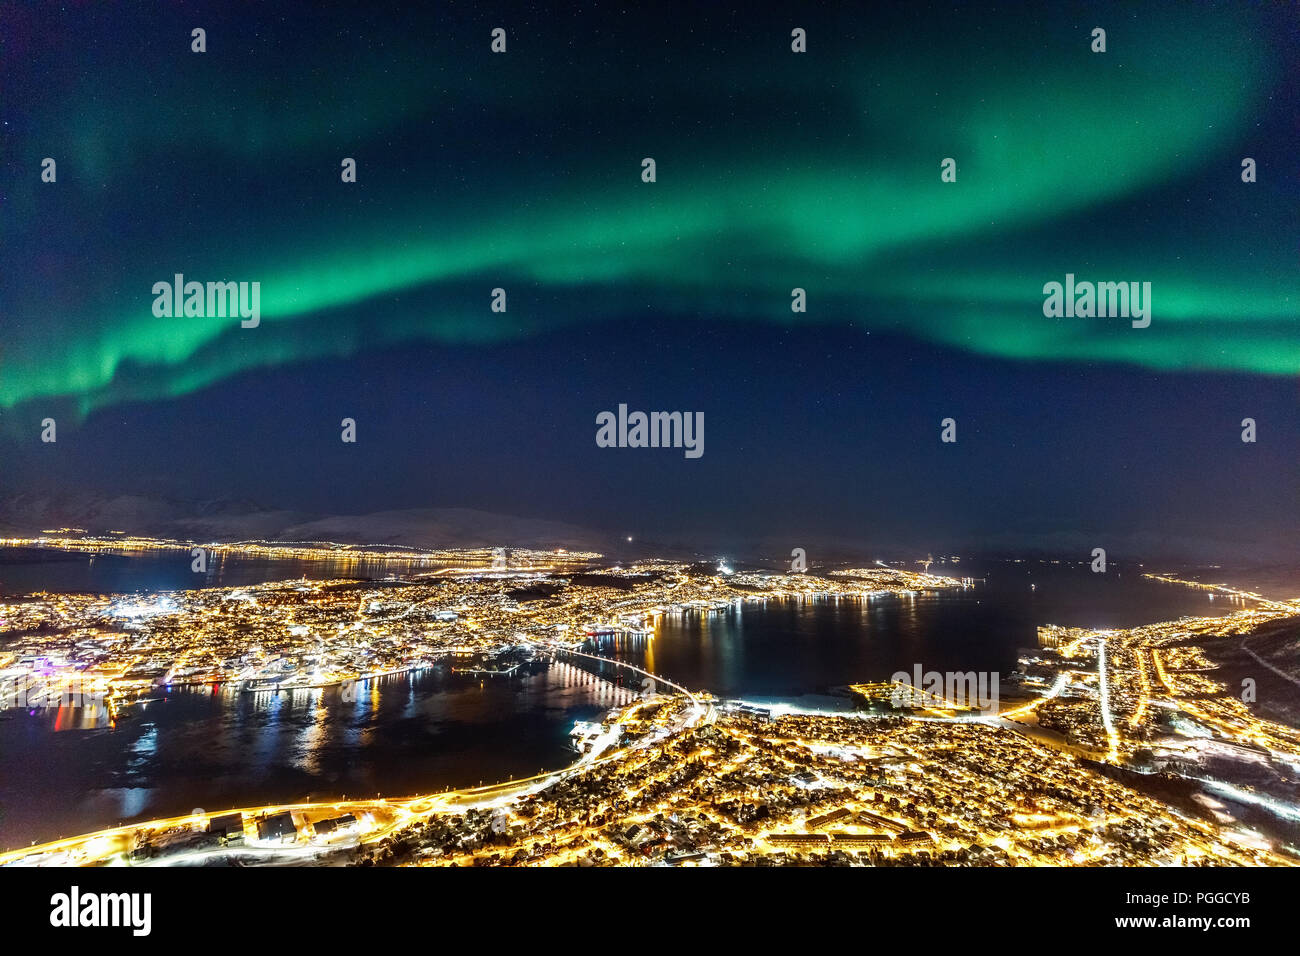 Incredible Northern lights Aurora Borealis activity above town of Tromso in Northern Norway - Stock Image